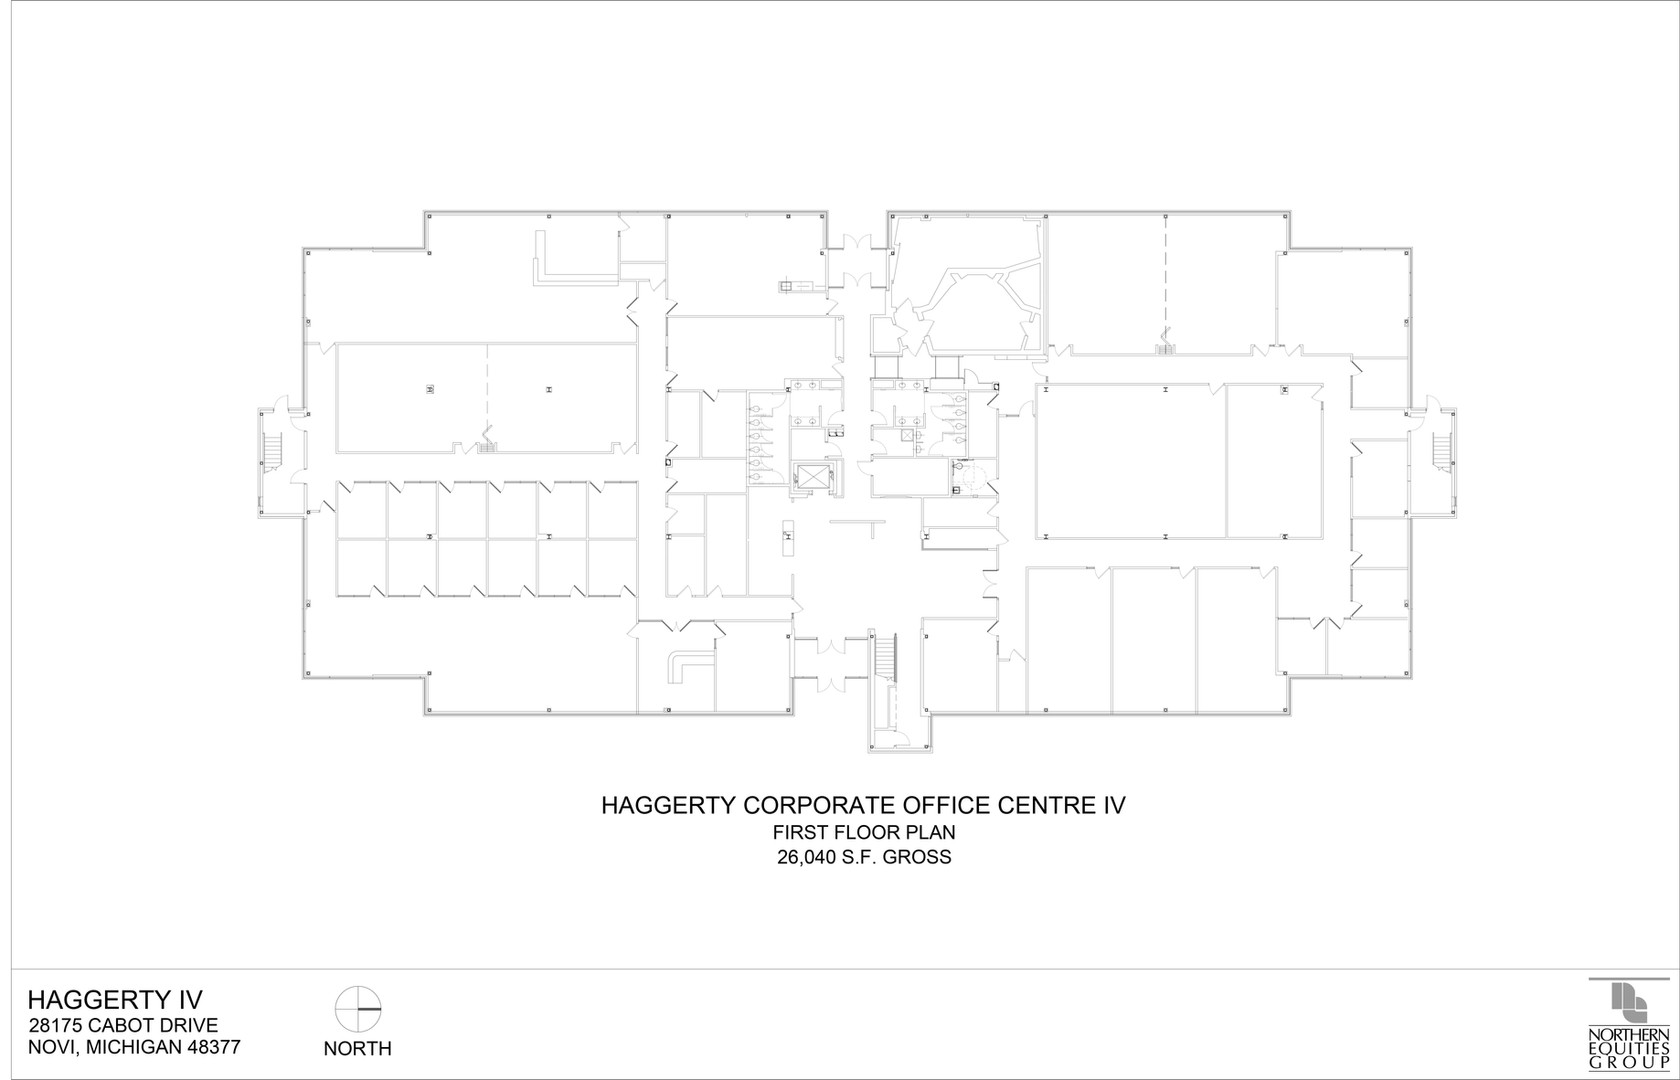 HCOC-IV---First-Floor-Plan.jpg